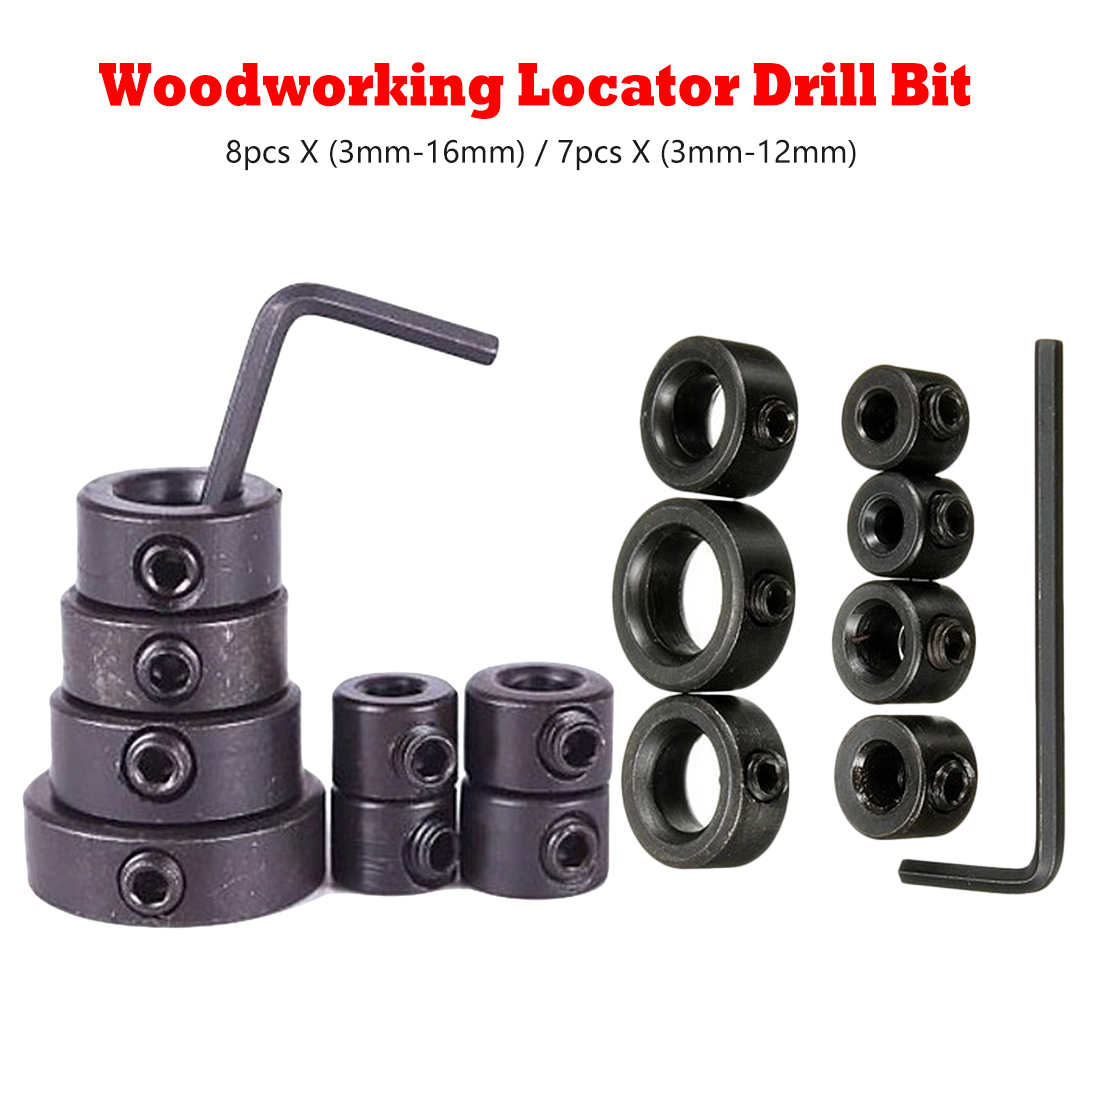 Drill Bit Tool Depth Stop Collar Ring Positioner Spacing Locator Woodworking Tool With Hex Wrench 8pc X 3mm-16mm/7pc X 3mm-12mm